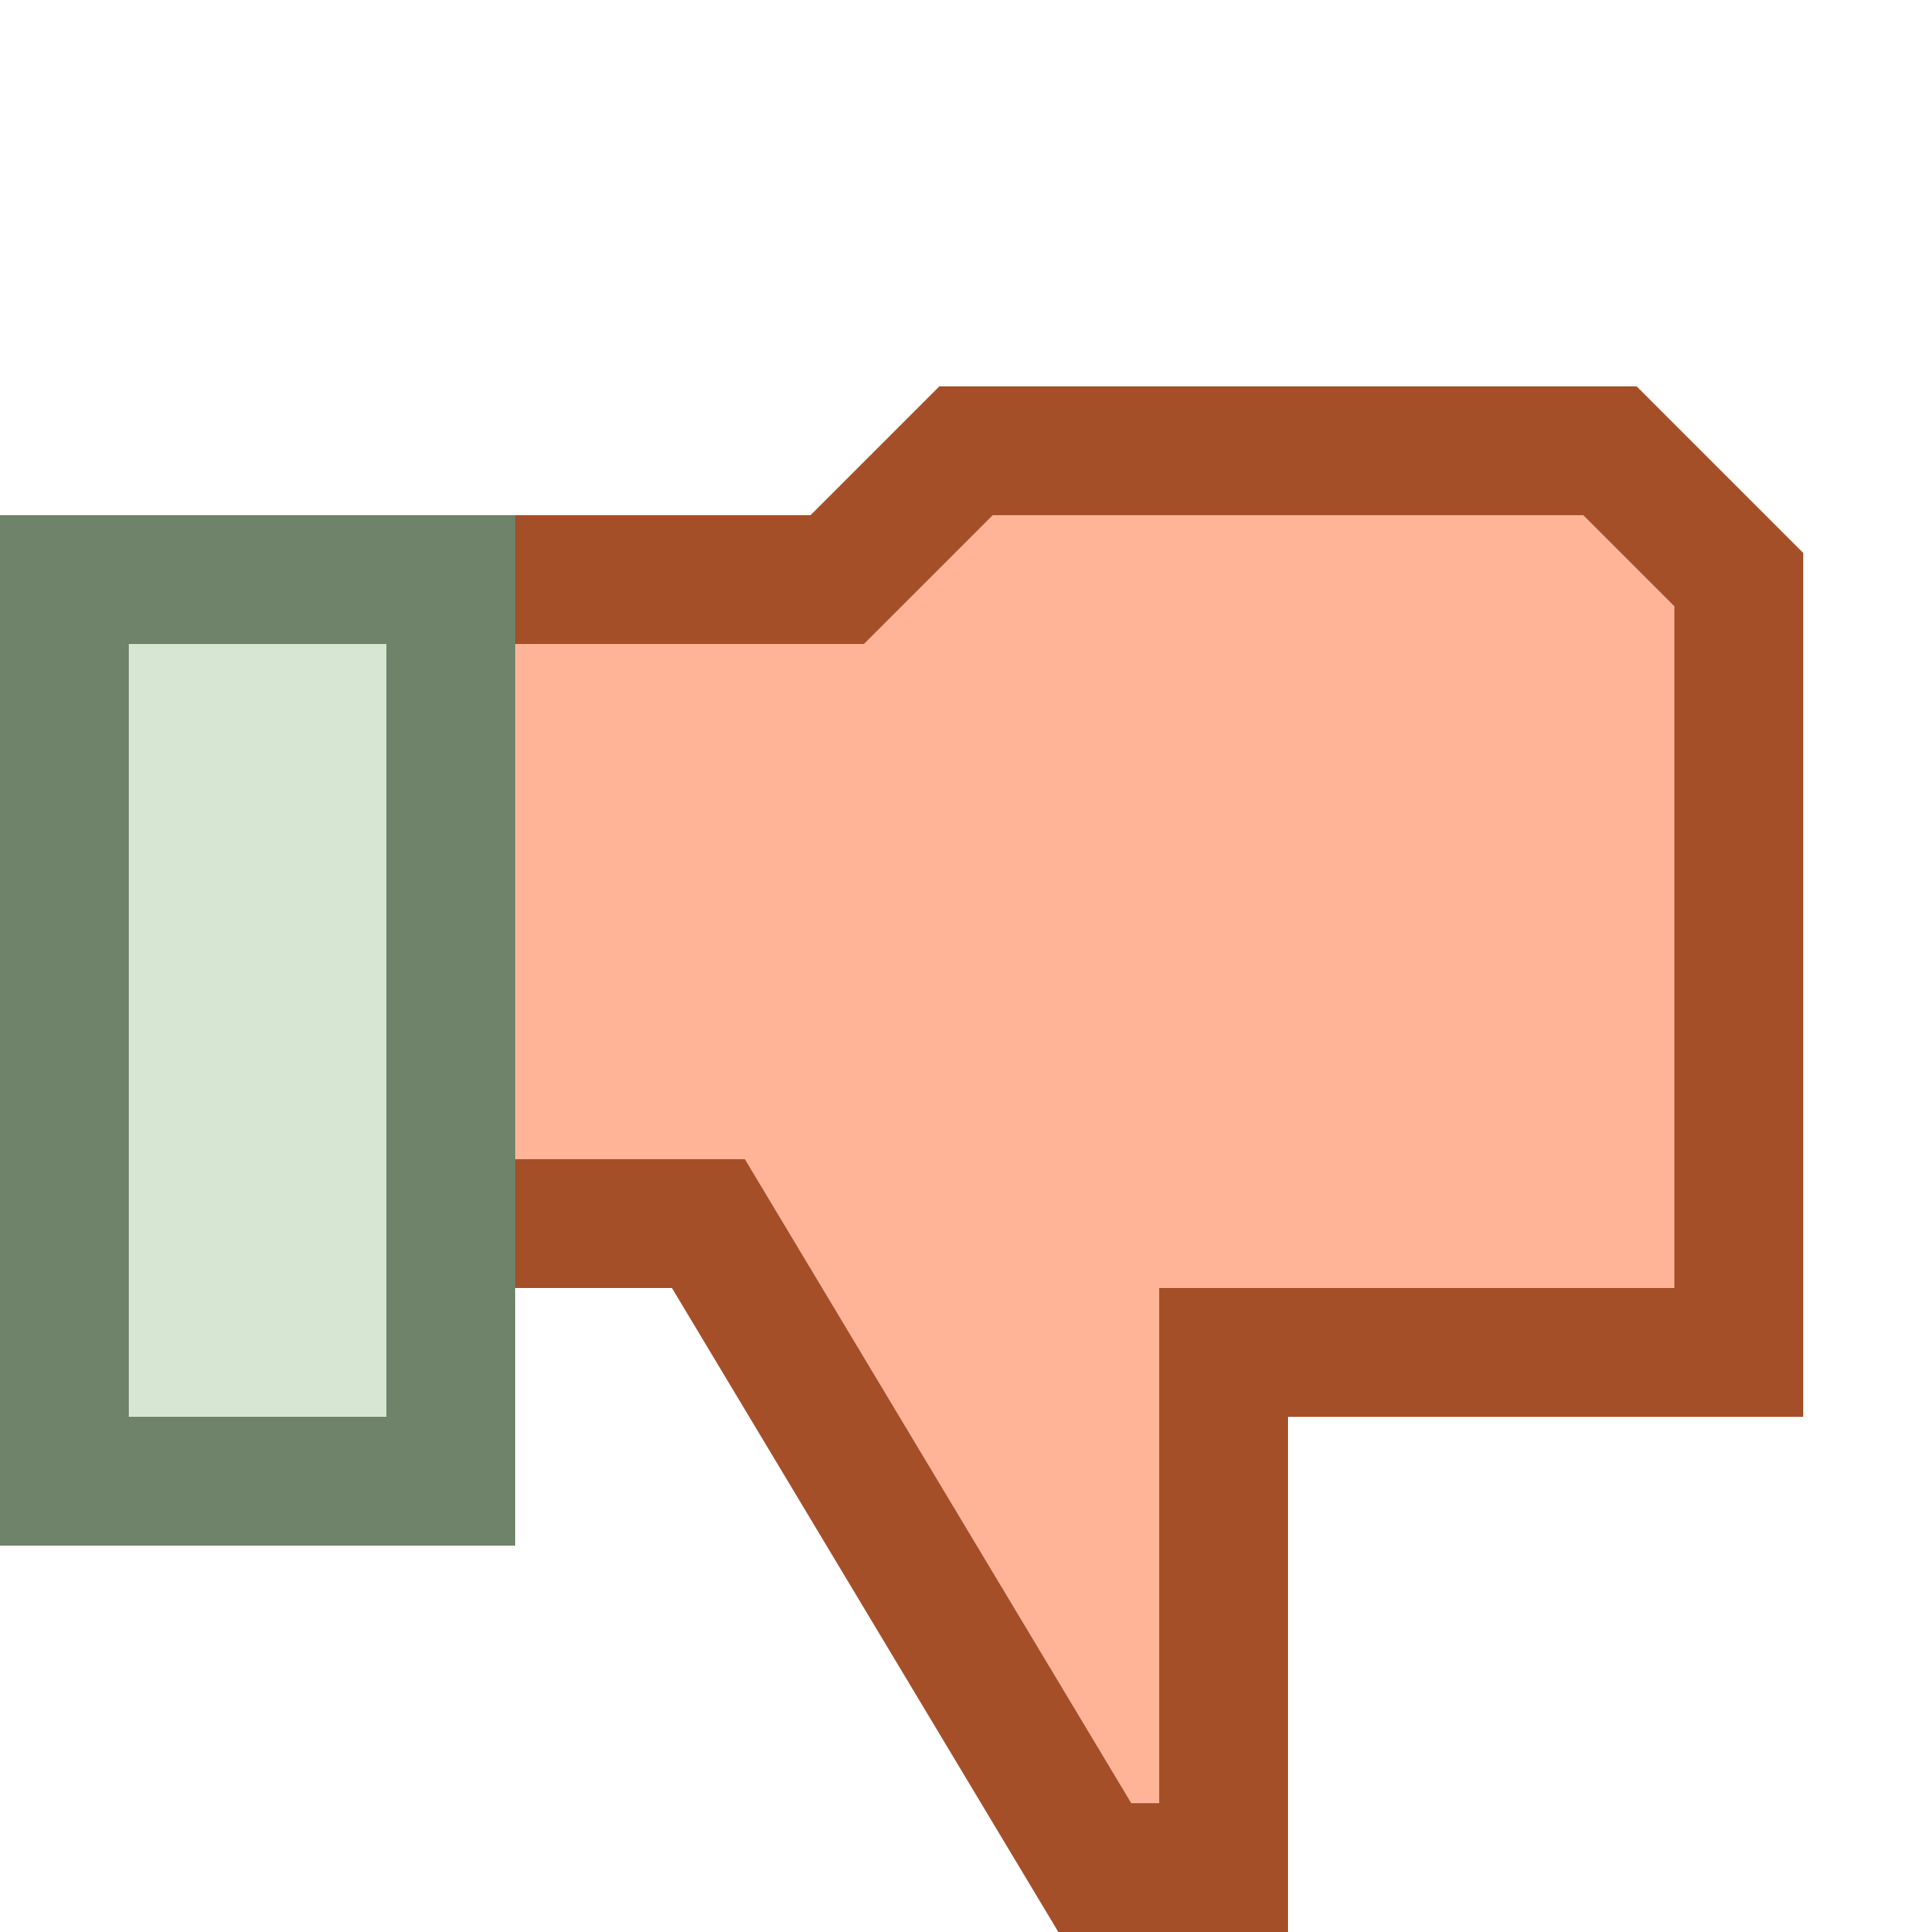 Thumb down Dislike by Steren